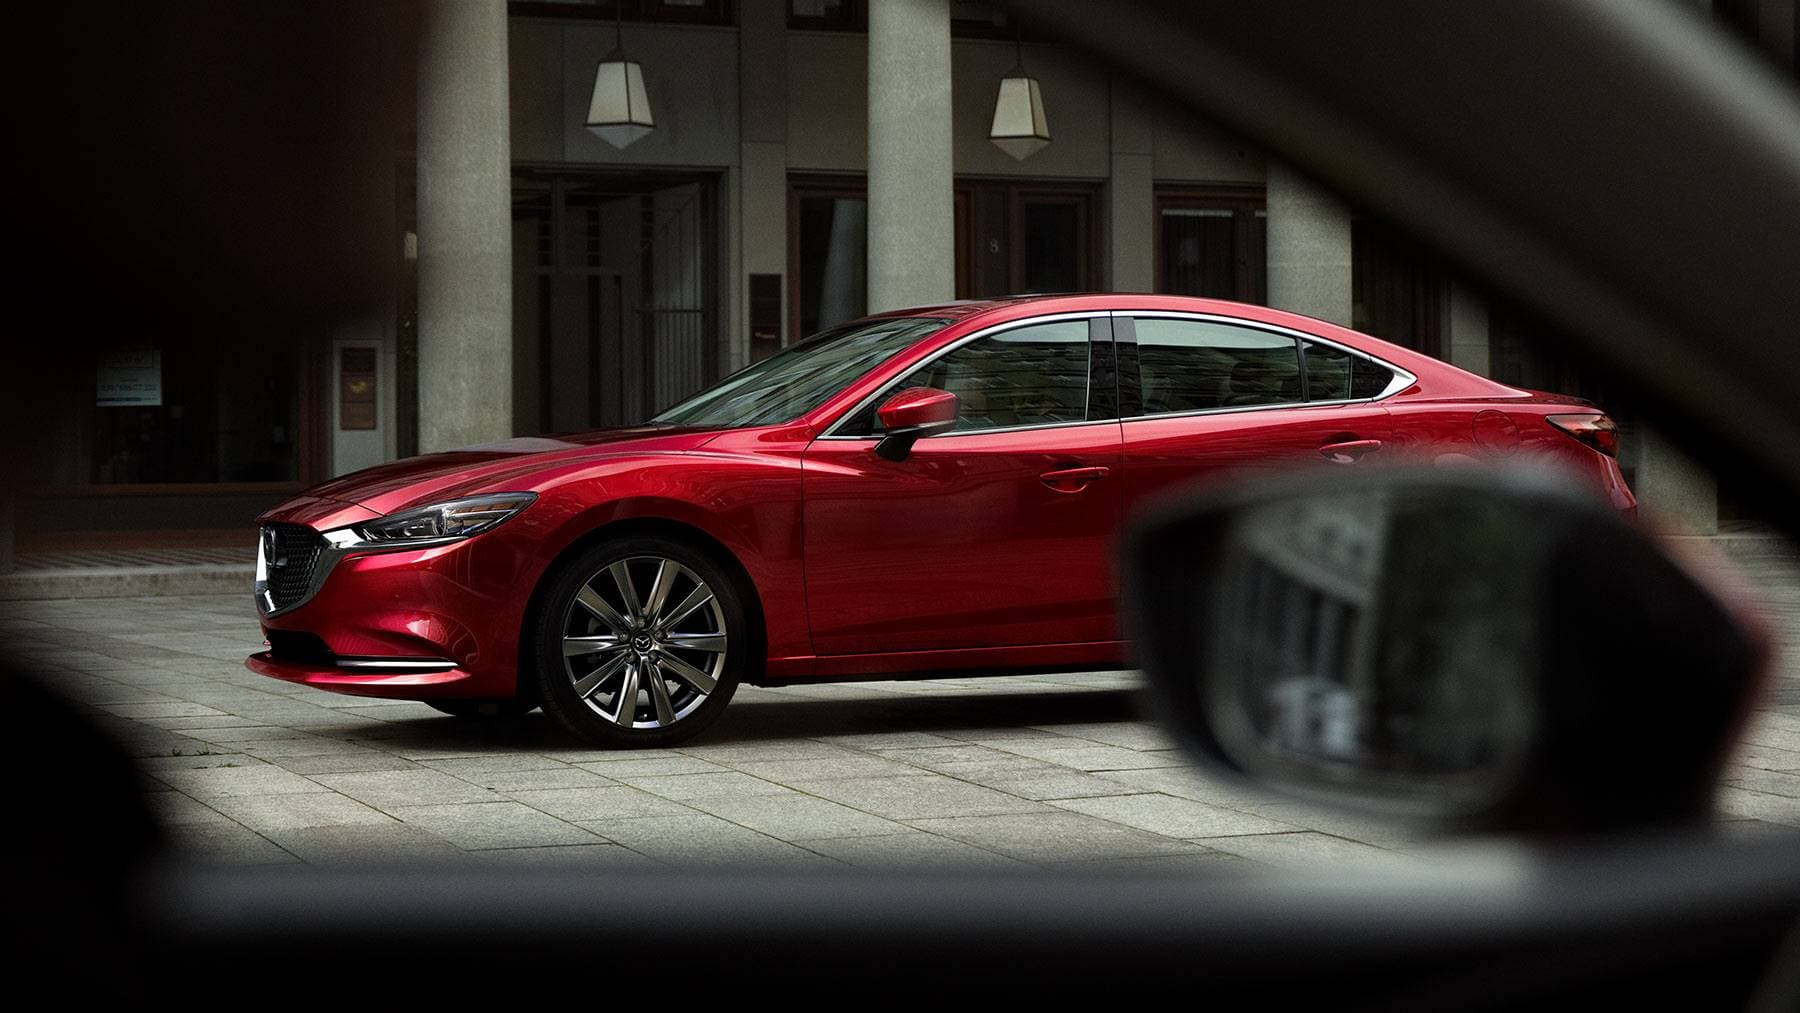 Sophisticated 2018 Mazda6 Vehicles To Explore In Columbia, MO